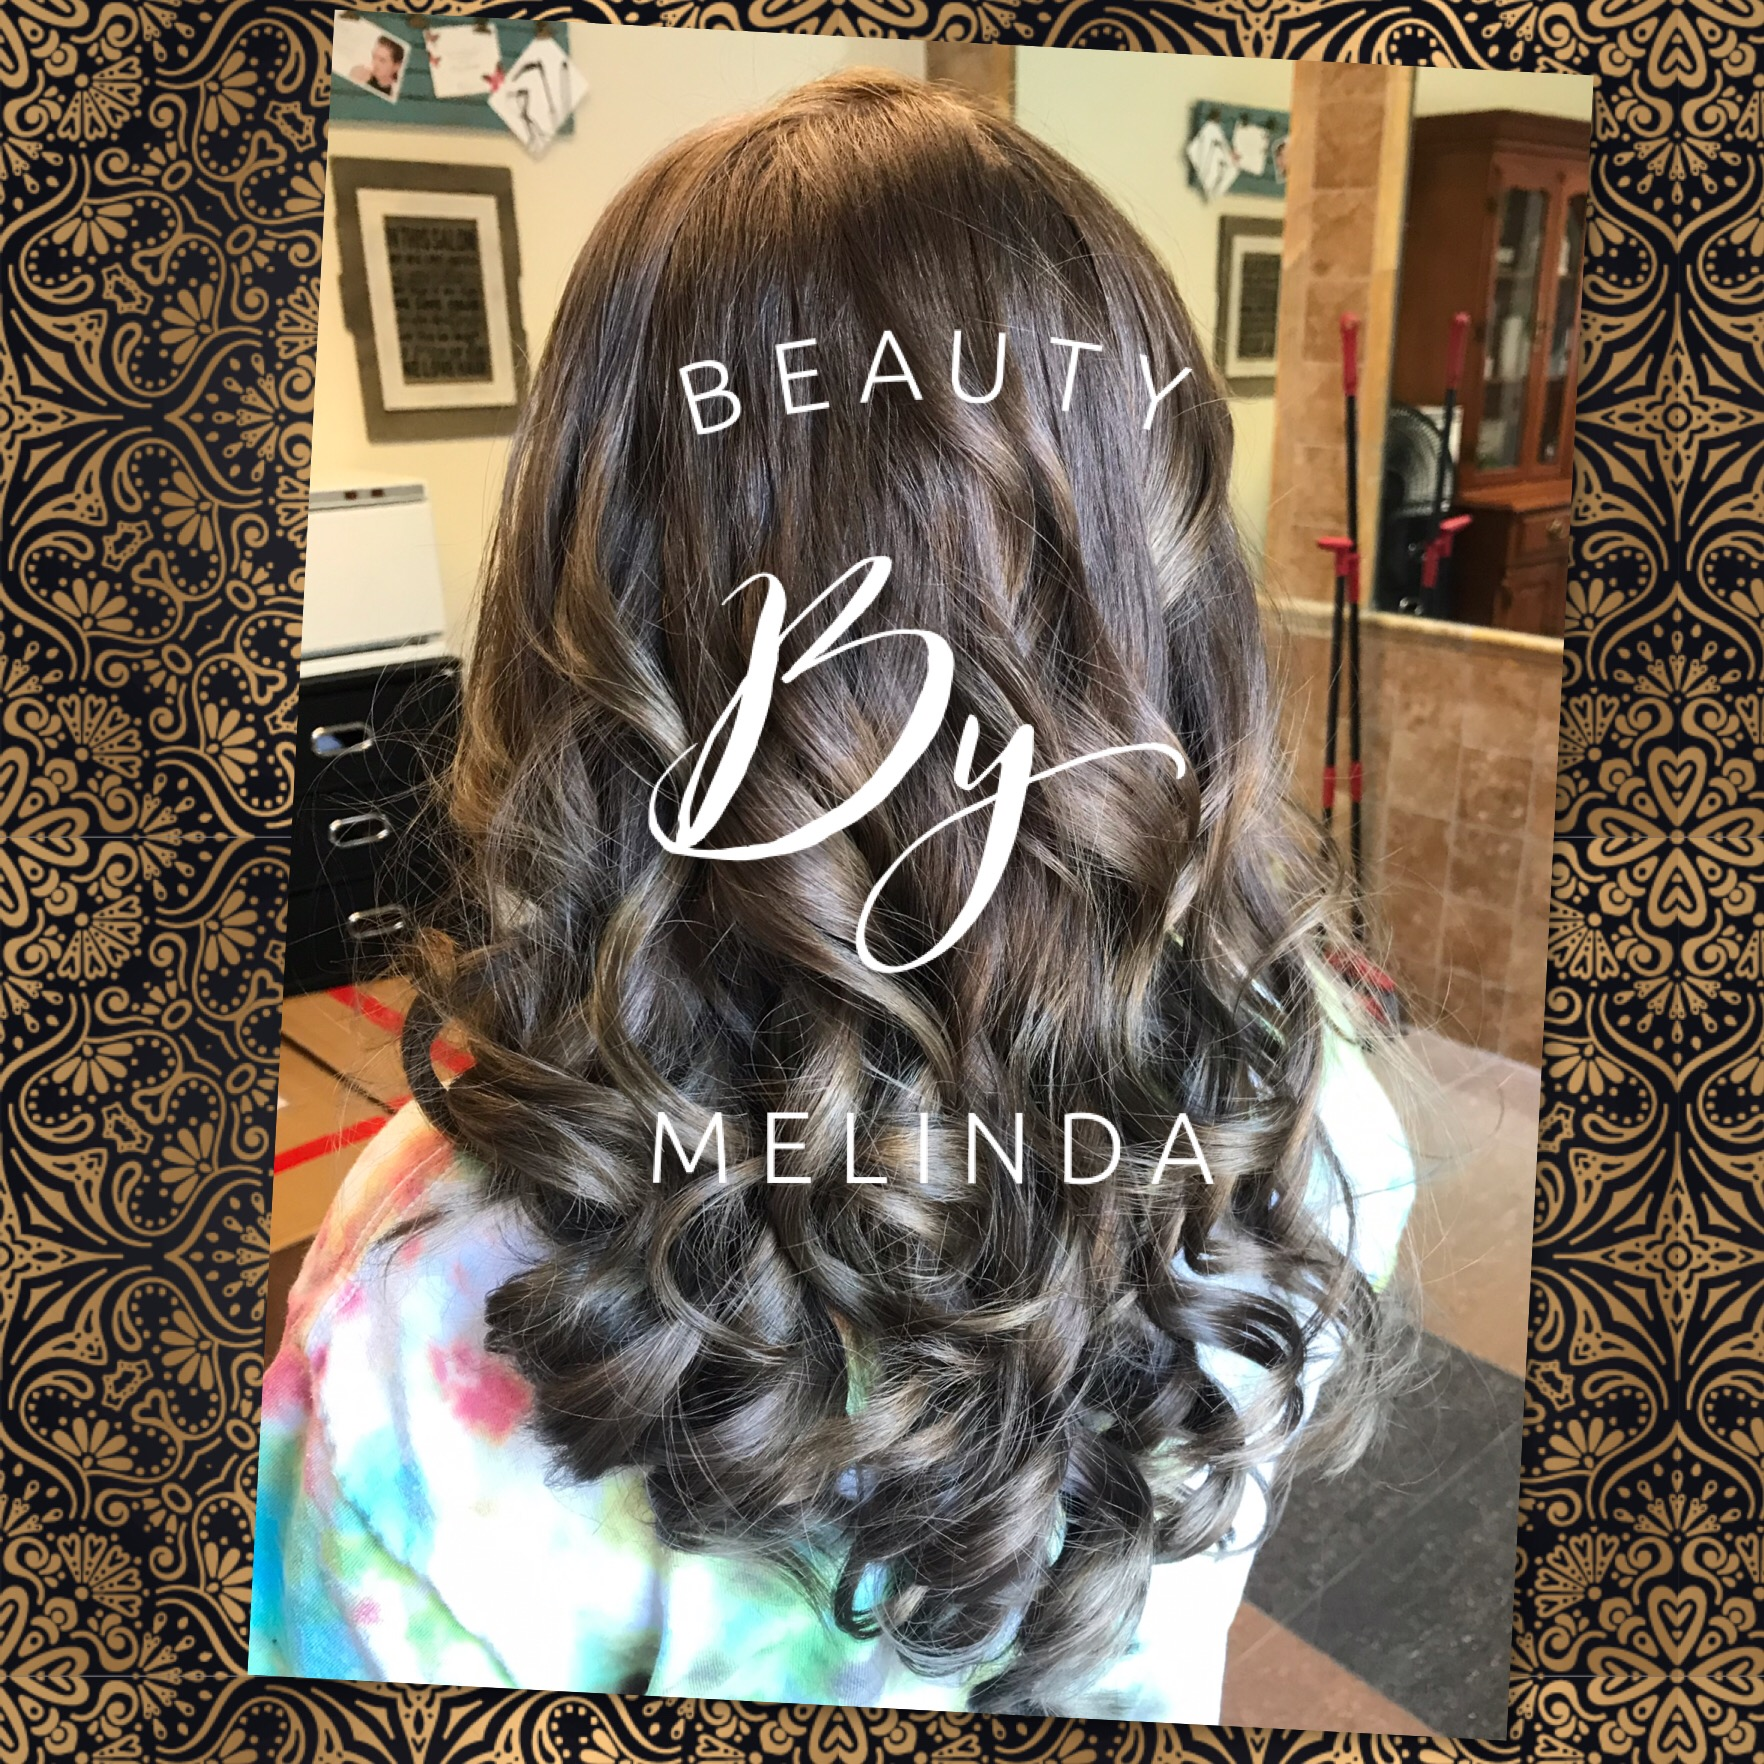 Beauty by Melinda